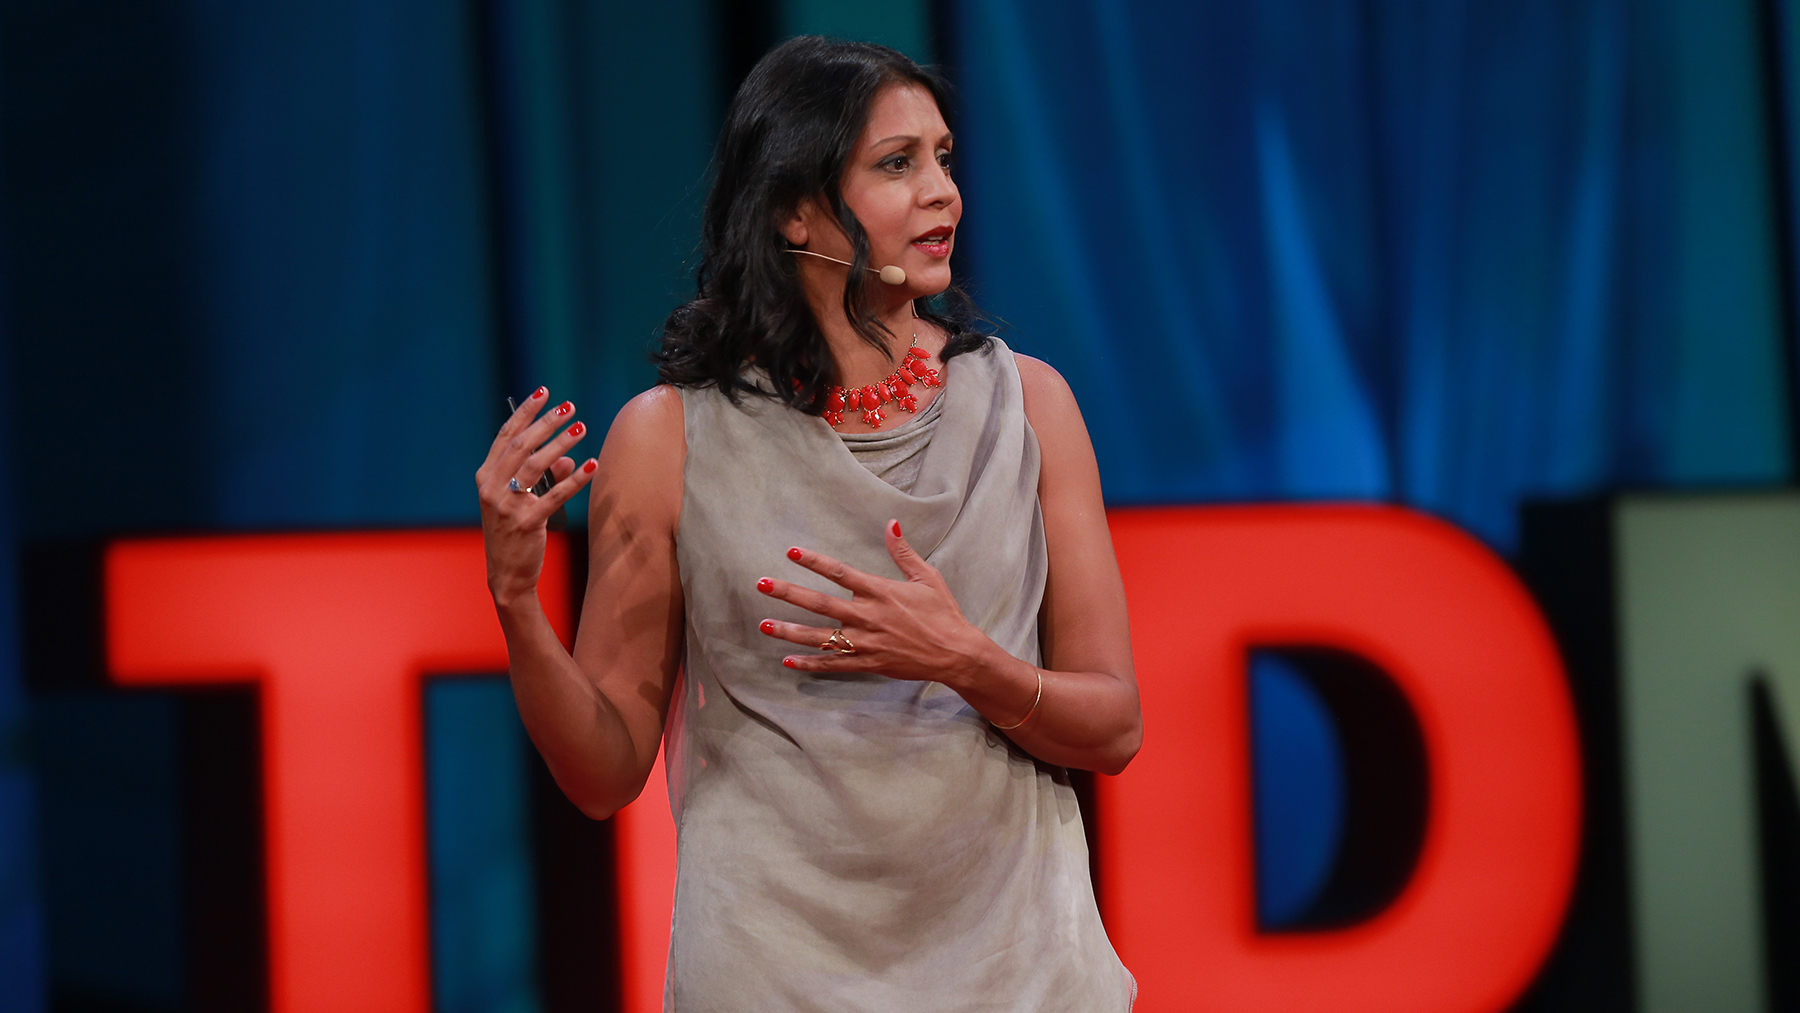 Sonia Shah delivering a TEDMED talk. (Photo courtesy of Sonia Shah)